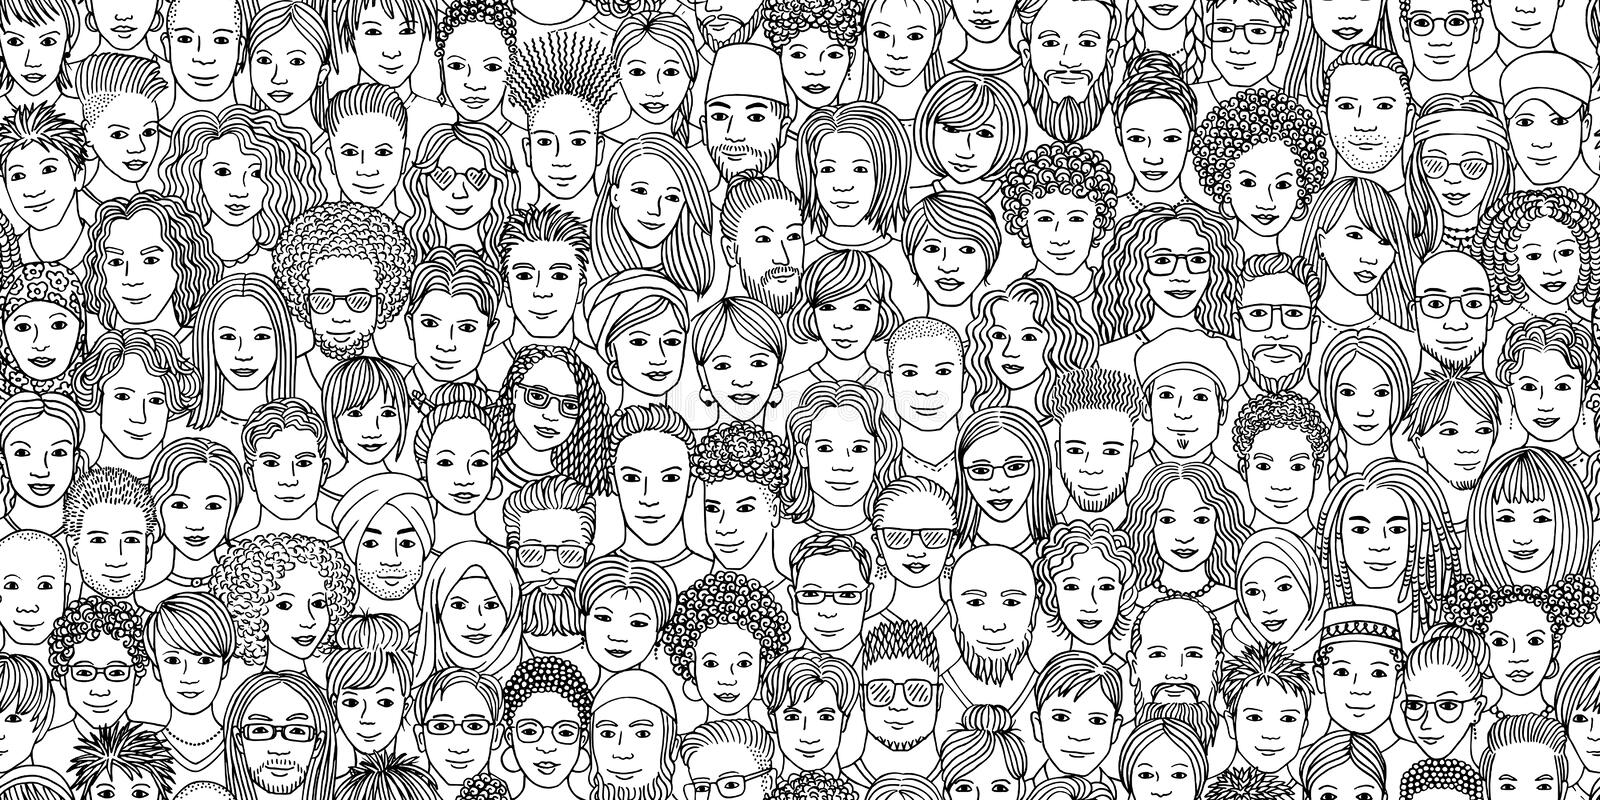 Diverse crowd of people in black and white. Diverse crowd of people - seamless banner of 100 different hand drawn faces of various ethnicities vector illustration